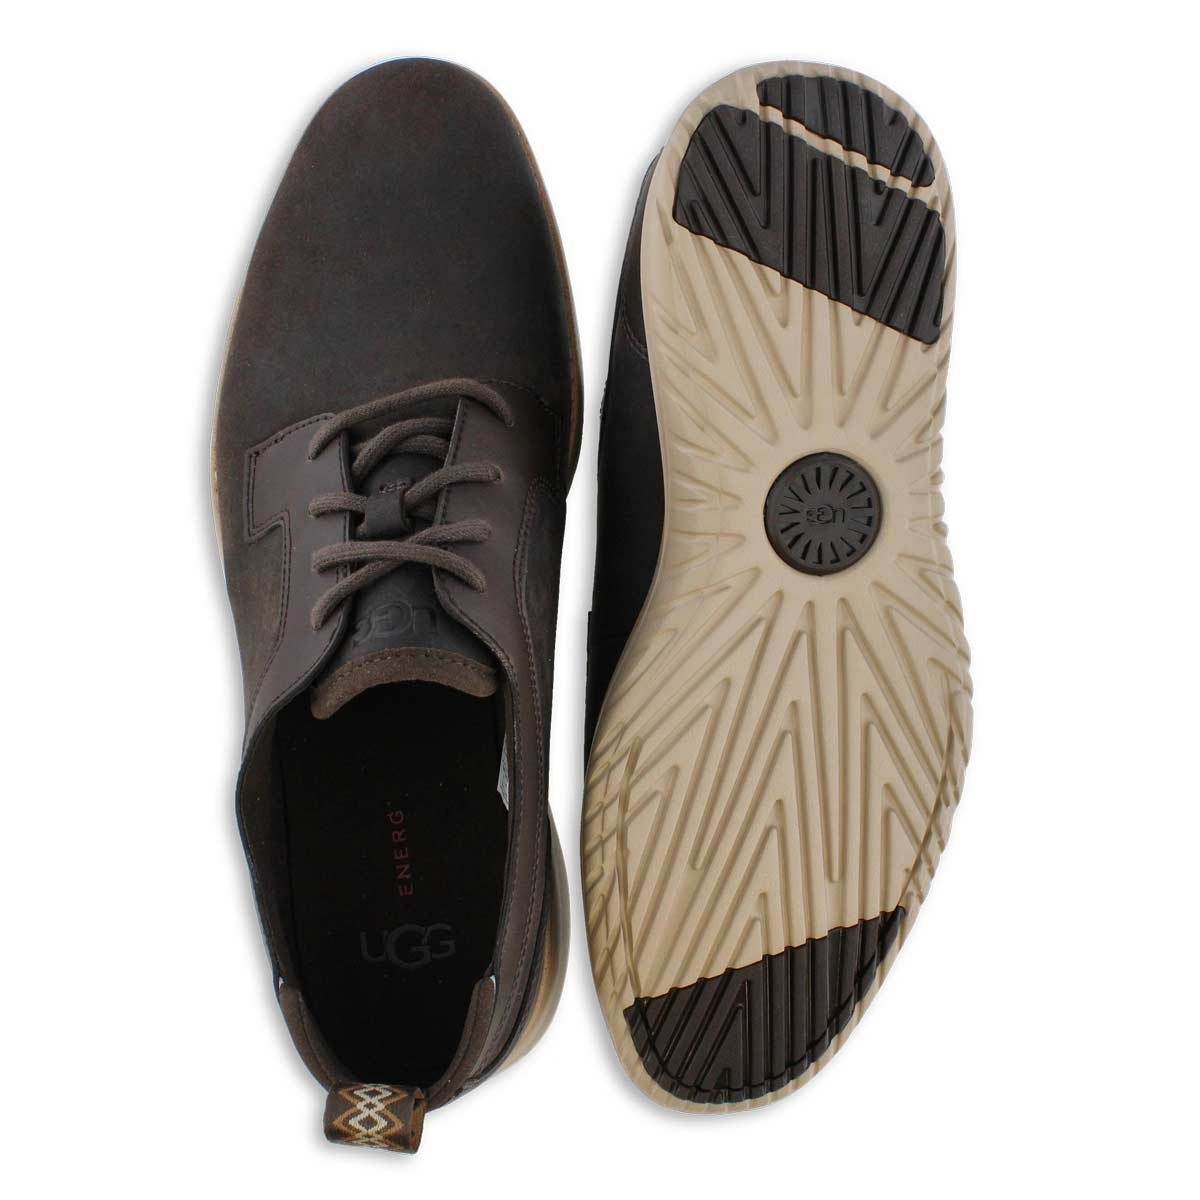 Mns Union Derby stout wtpf lace up shoe